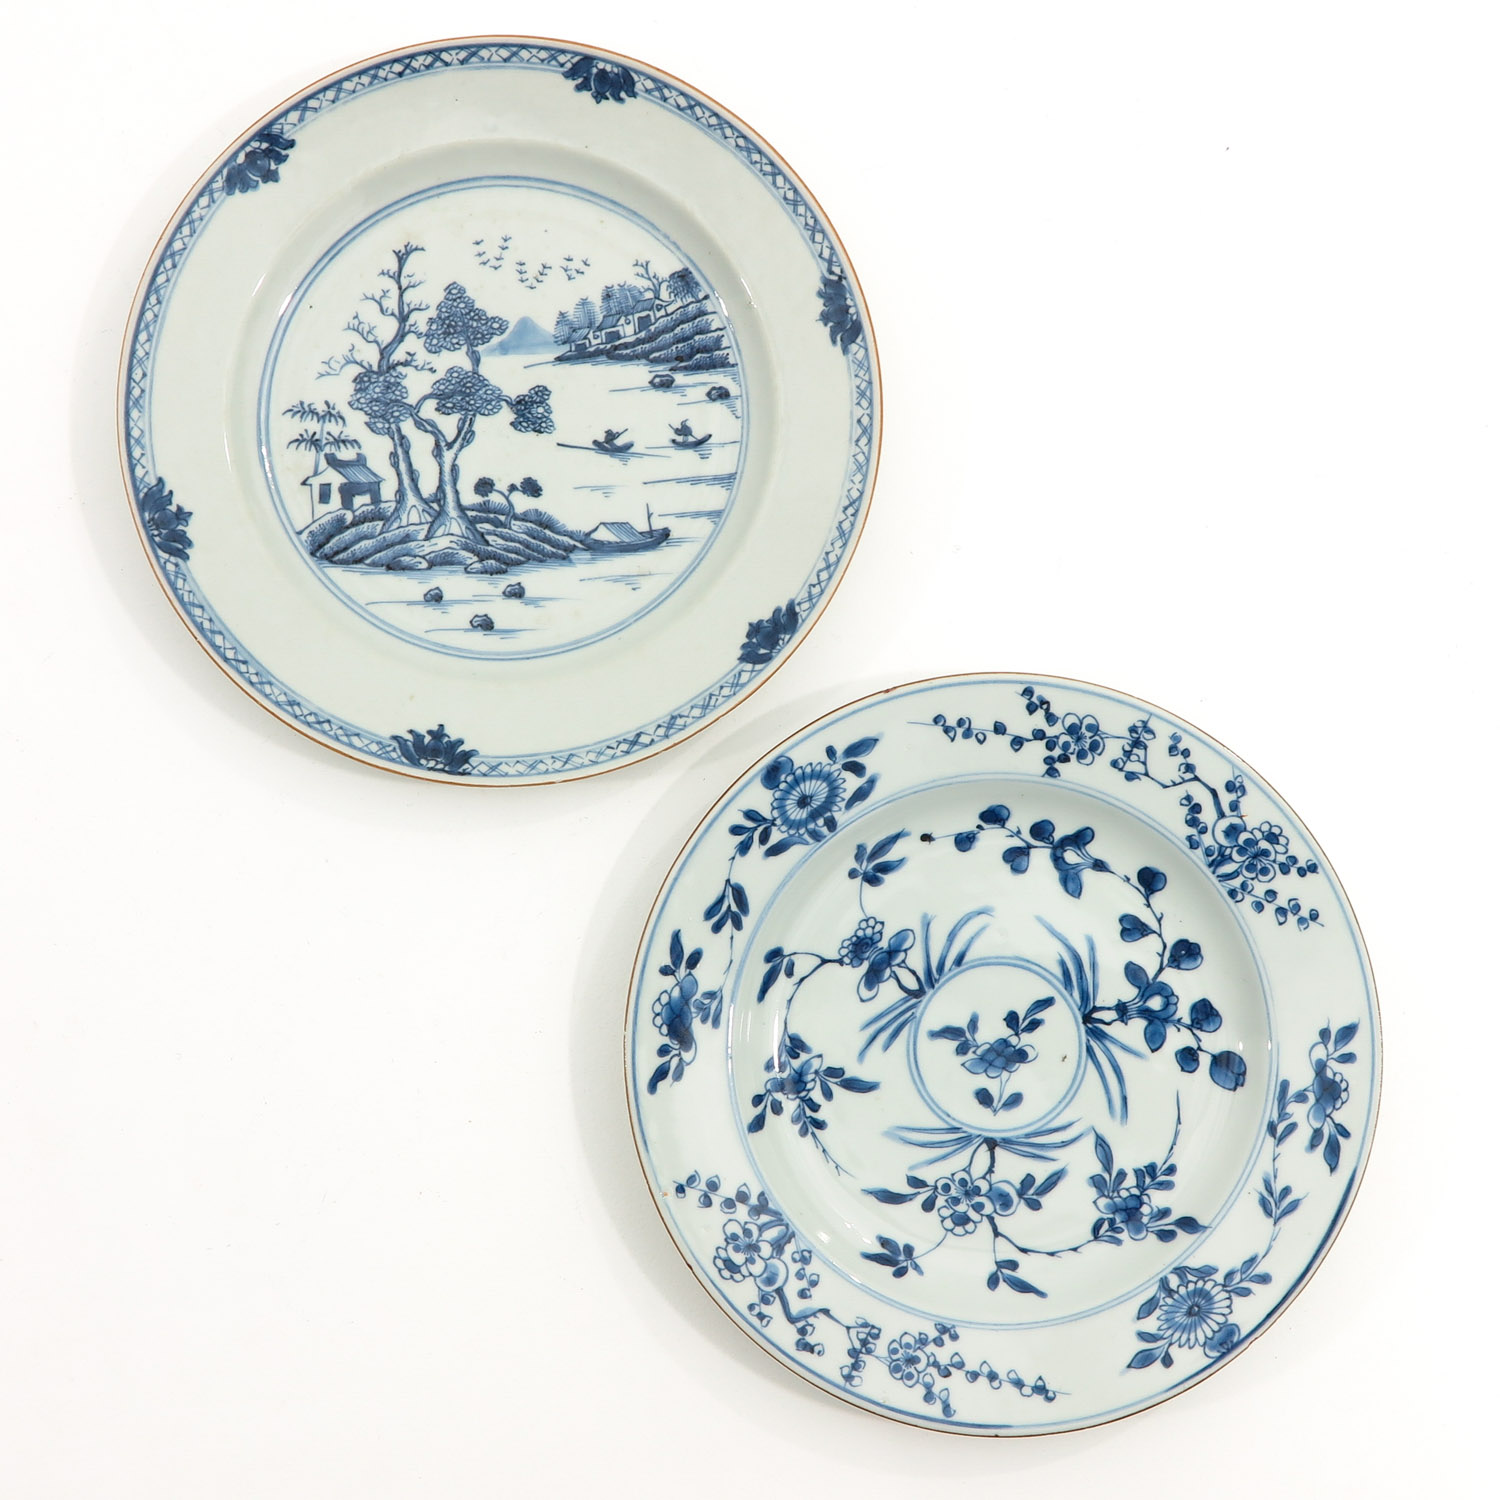 A Collection of 4 Blue and White Plates - Image 5 of 10